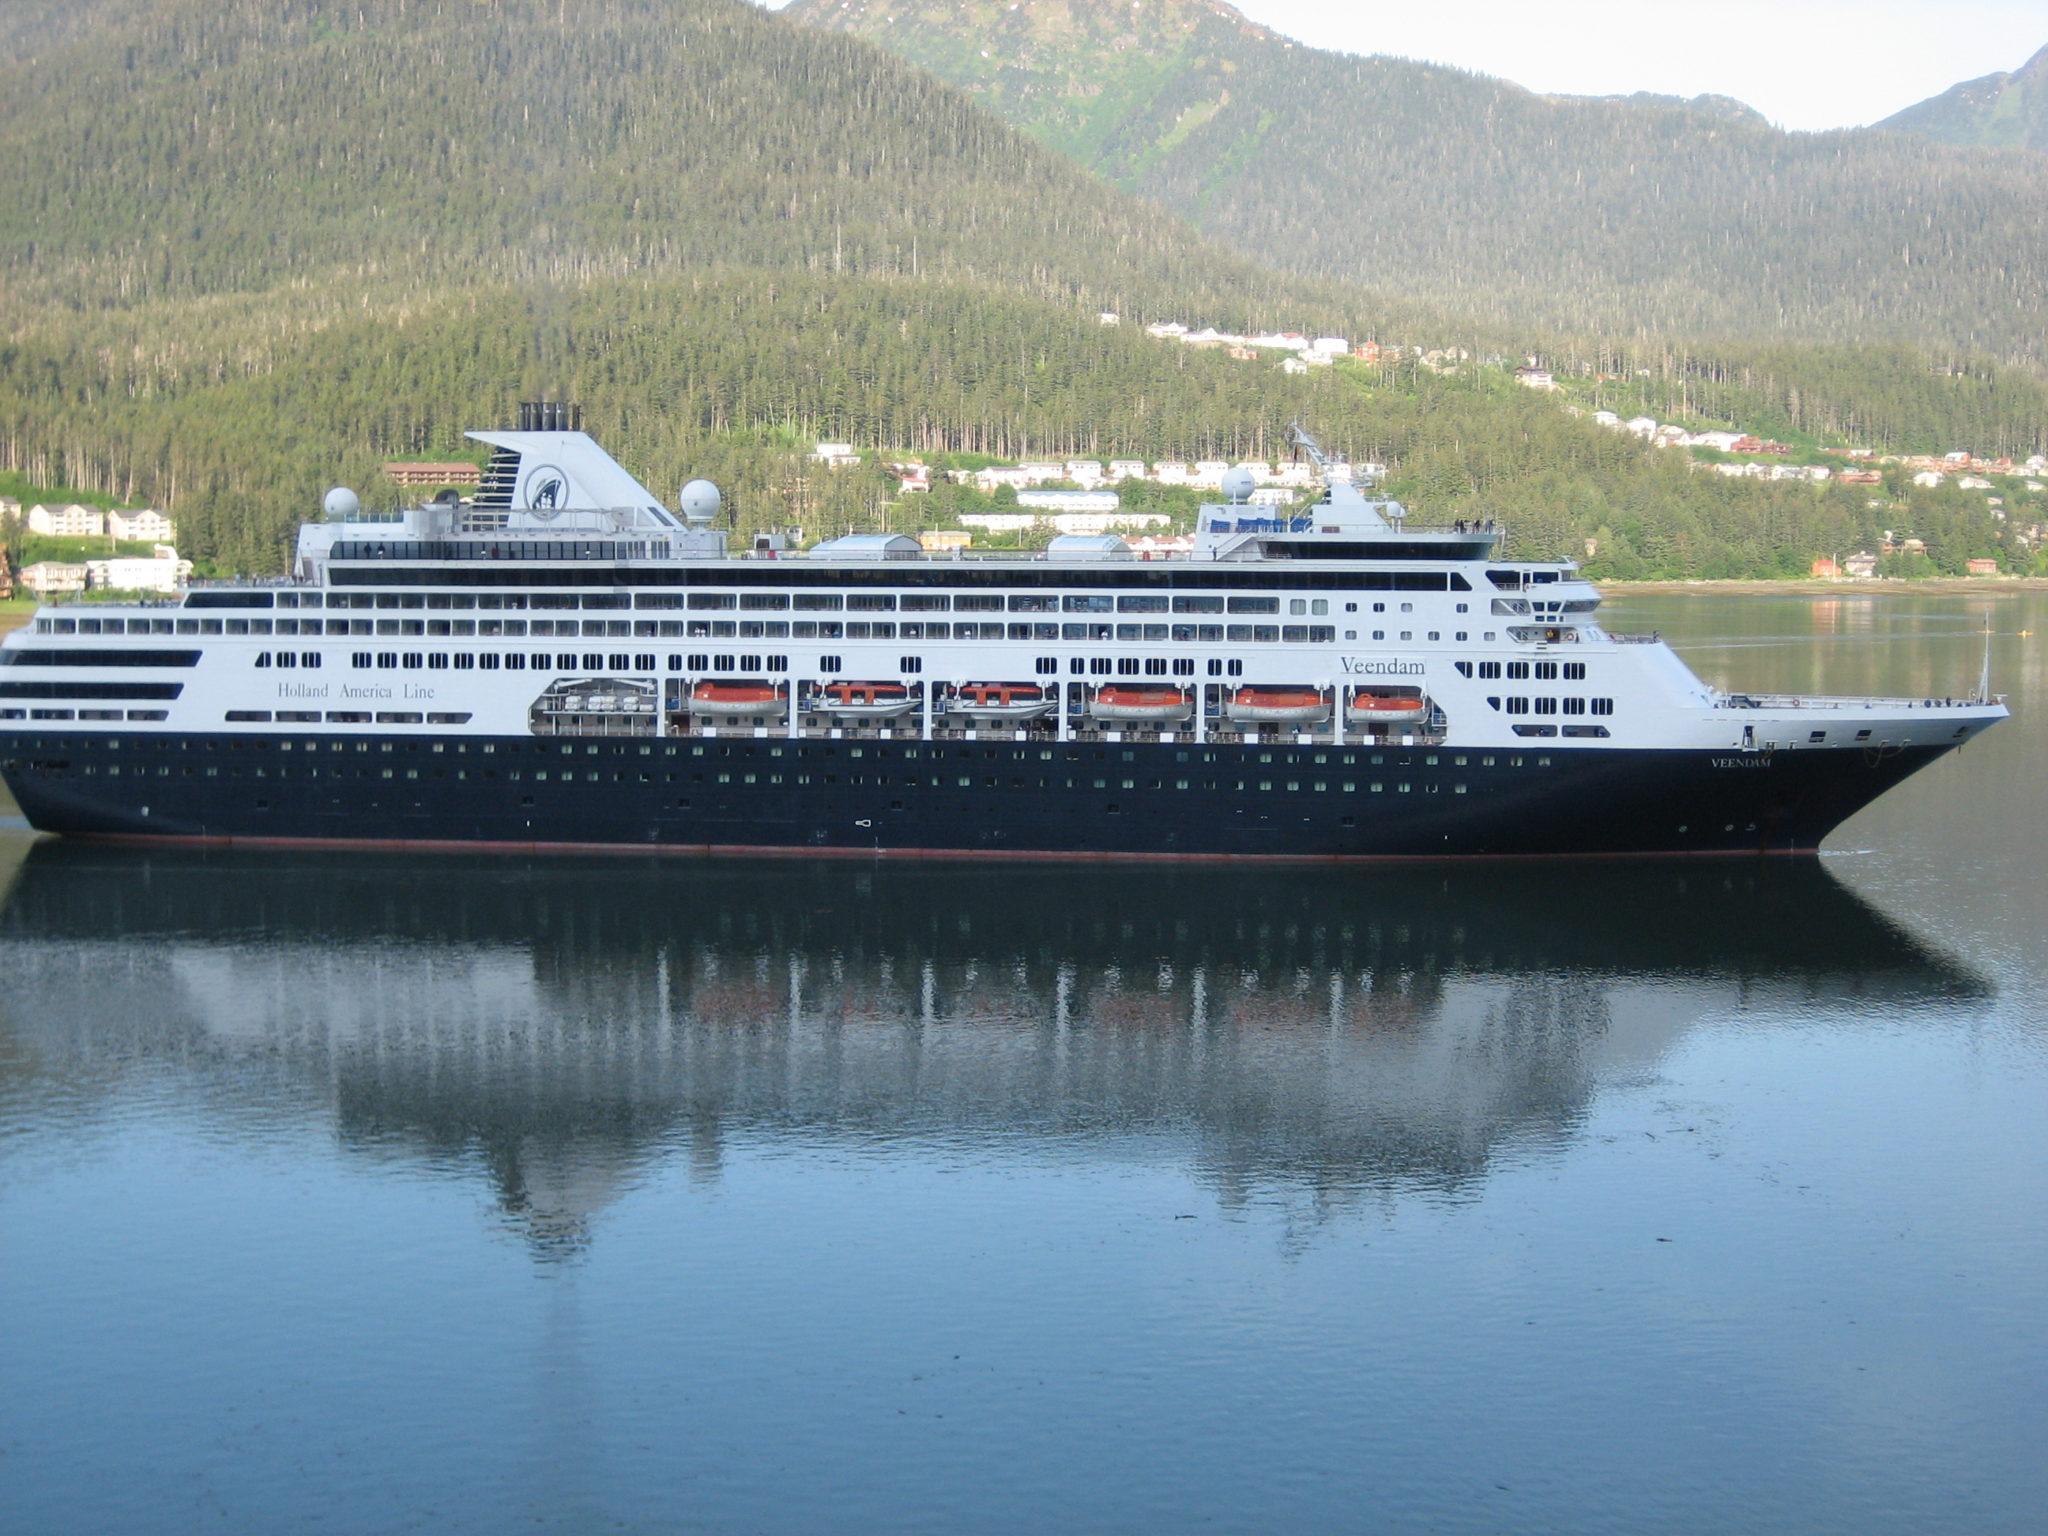 Sick After Norovirus Outbreak On Holland America Cruise Ship - Norovirus outbreak cruise ship